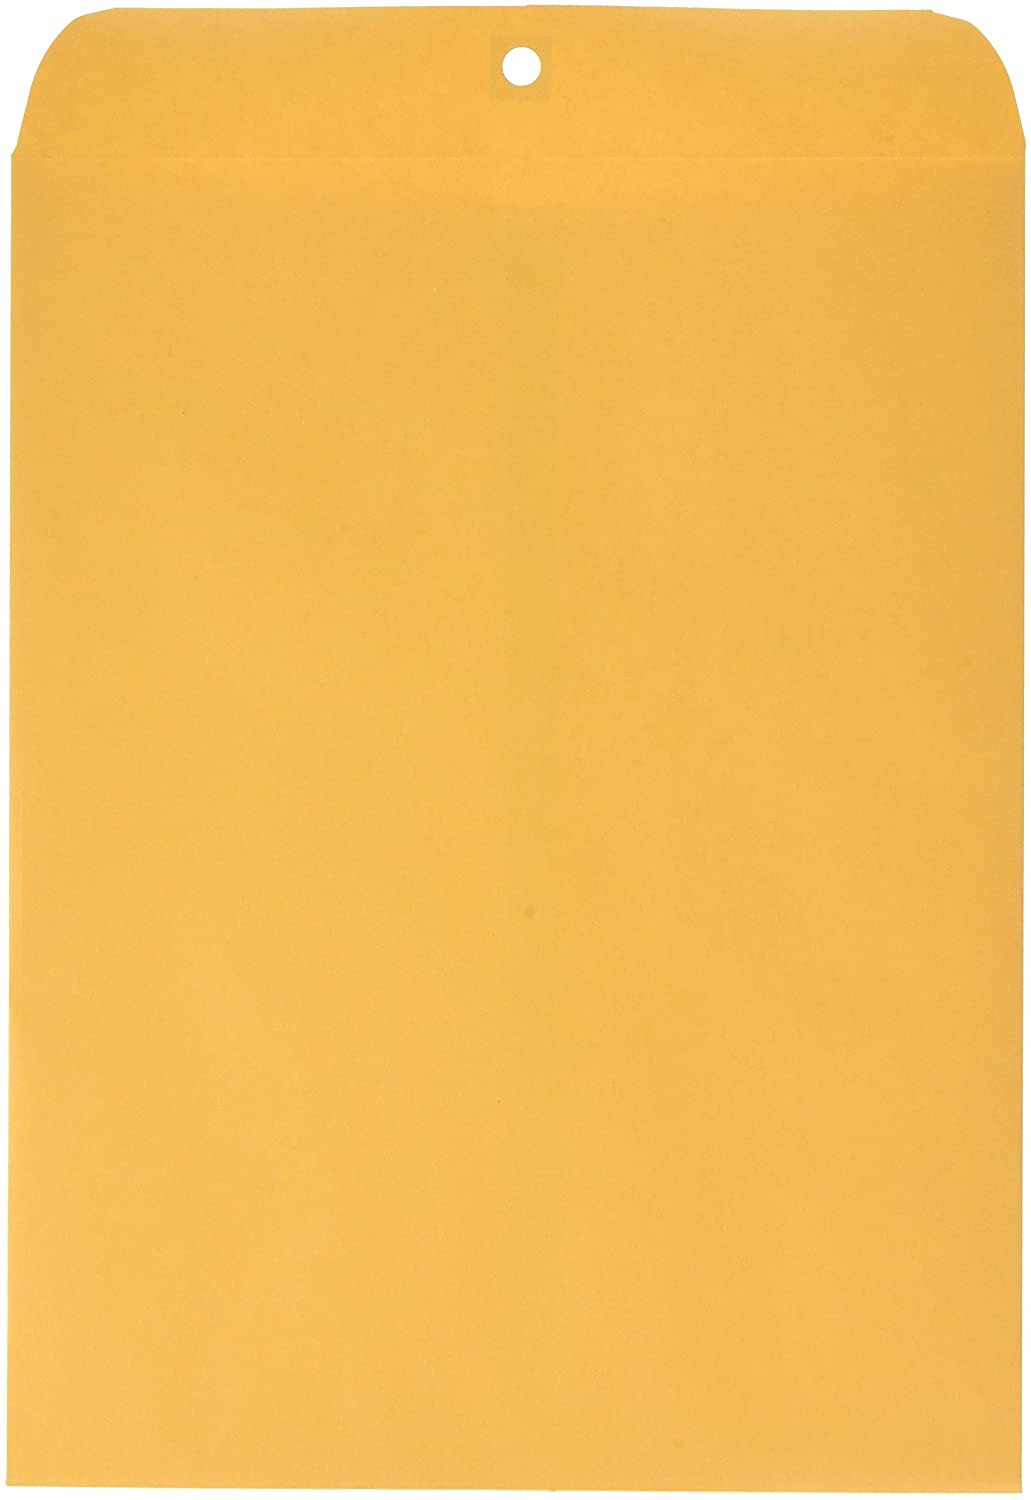 28lb 10 x 13 Quality Park Clasp Envelopes Brown Kraft 38197 Box of 100 Recycled Inches